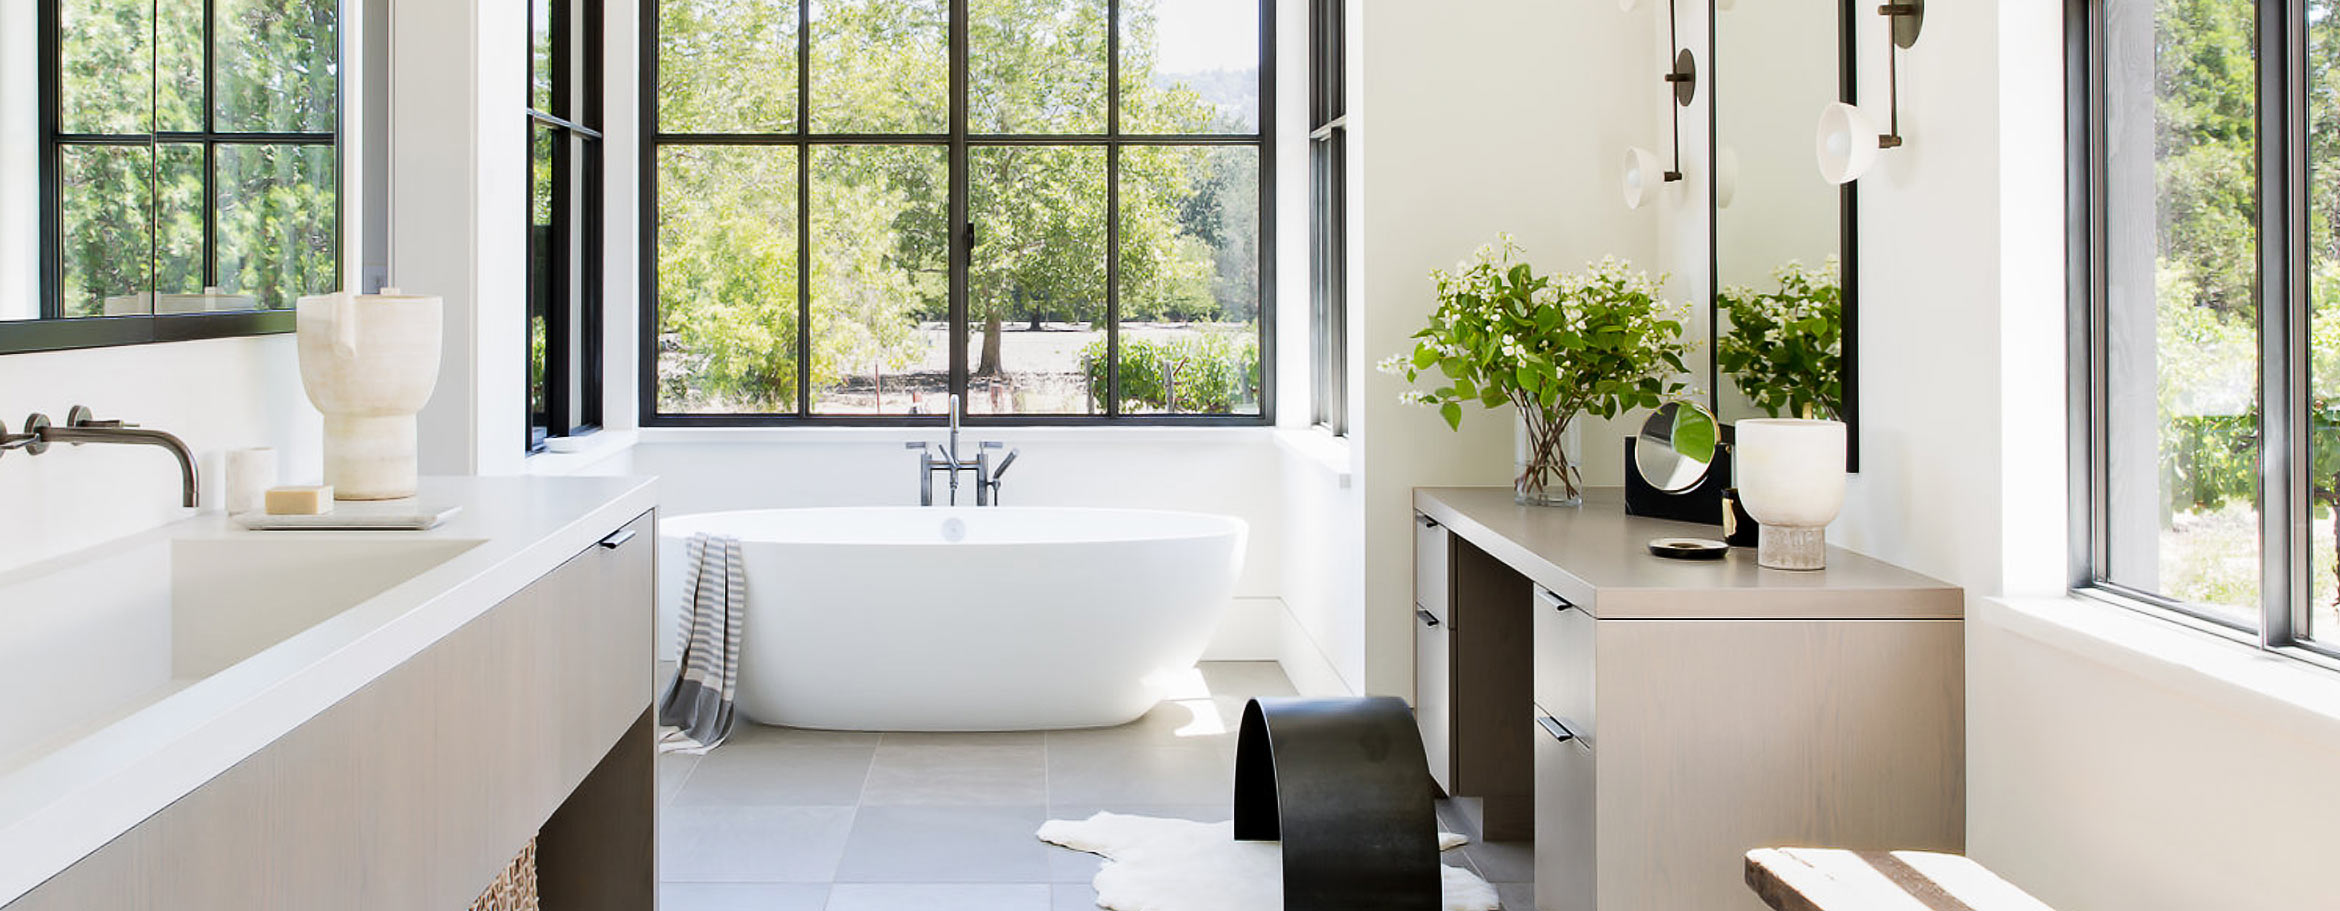 Indoor or outdoor stone baths Australia - Victoria + Albert baths and basins are distributed in Australia by Luxe by Design, Brisbane.